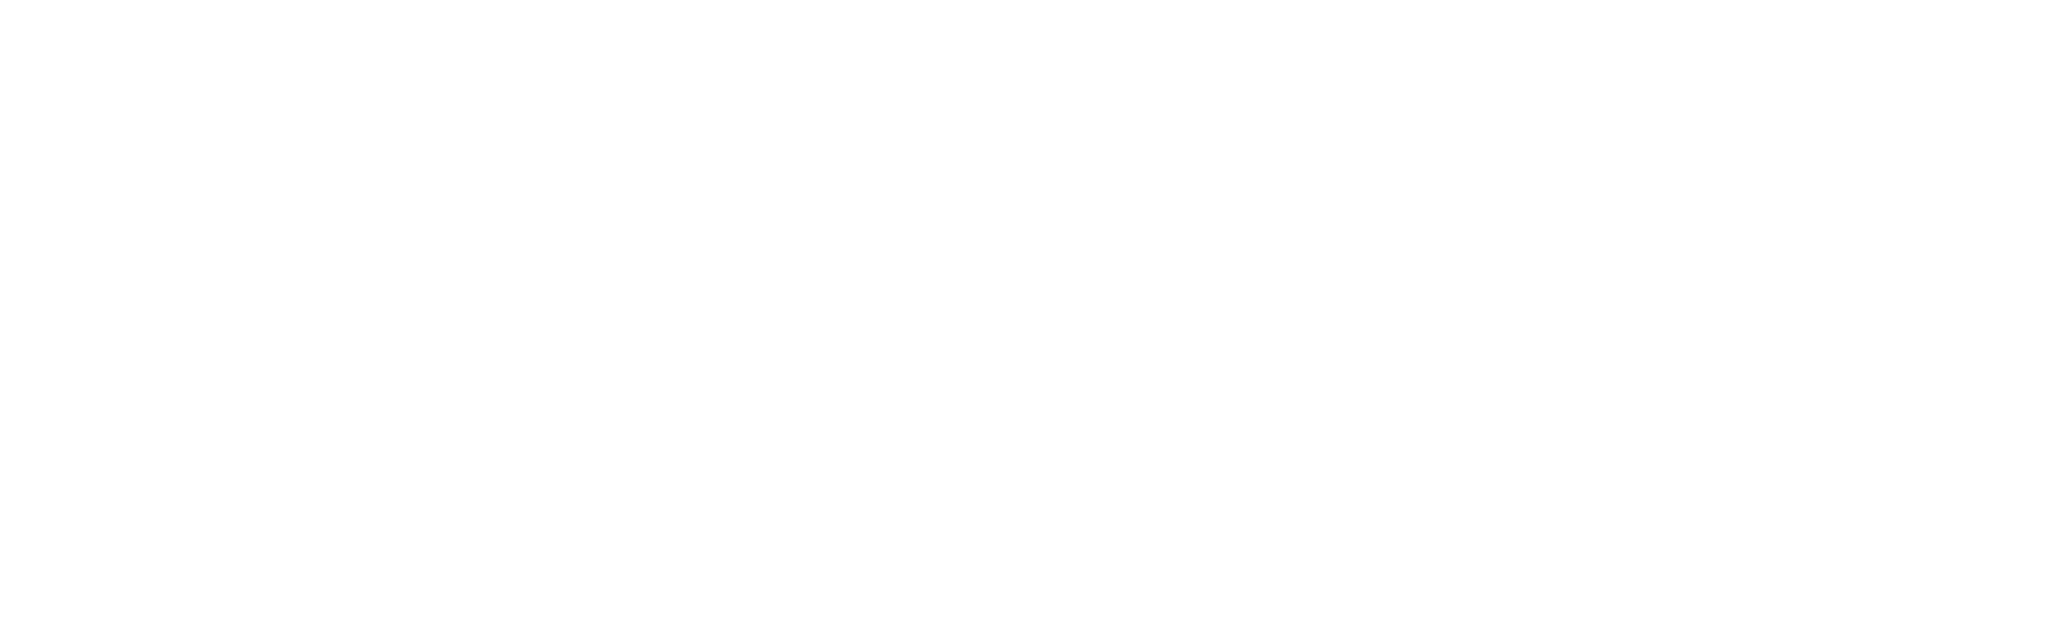 SeaGrown footer logo TEMP-WHITE v2.png